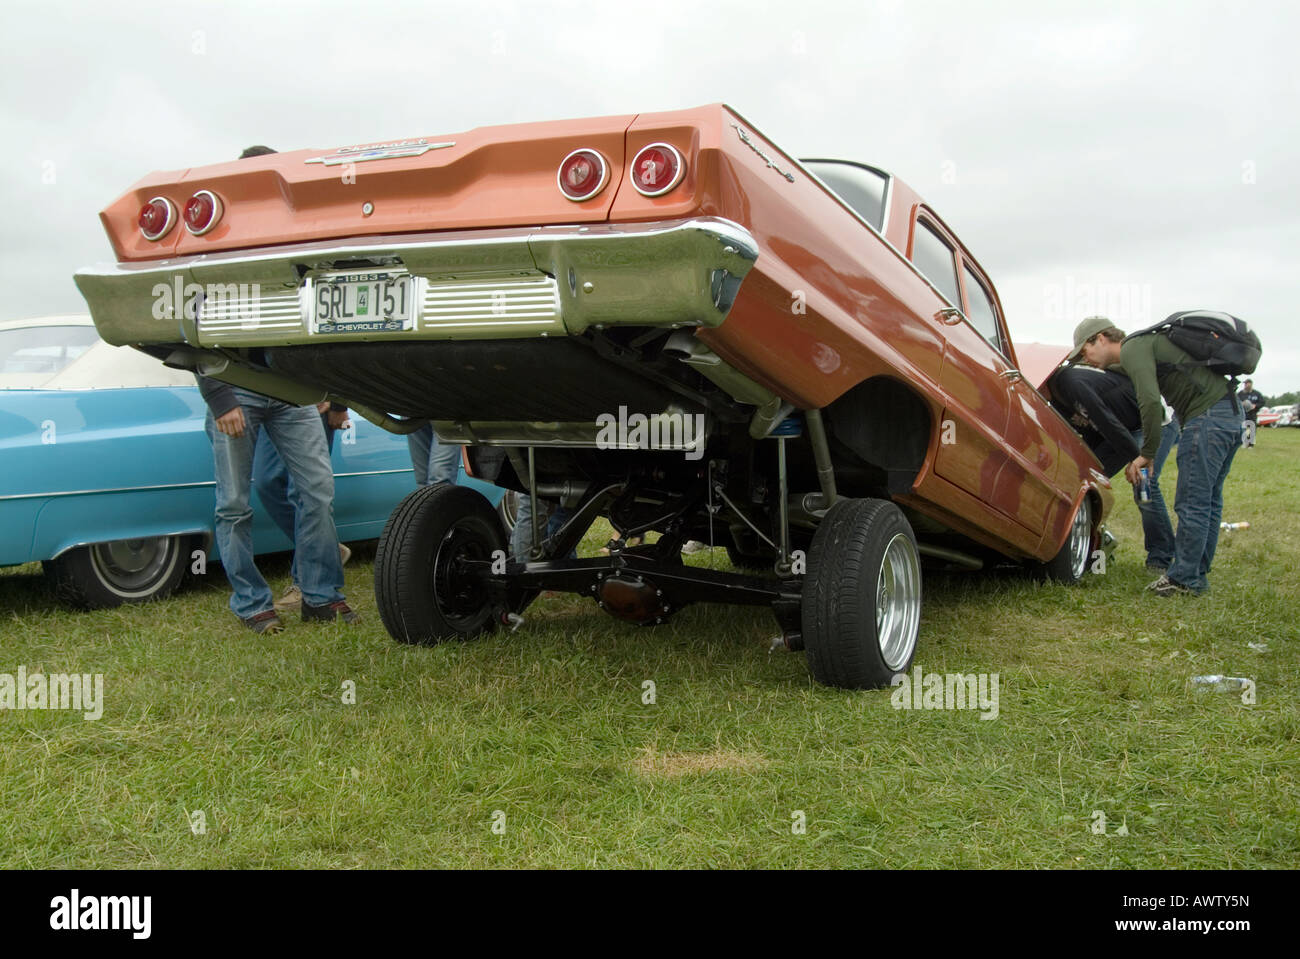 Low Rider Lowrider Air Suspension Bouncing Jacked Up Cool Chevy